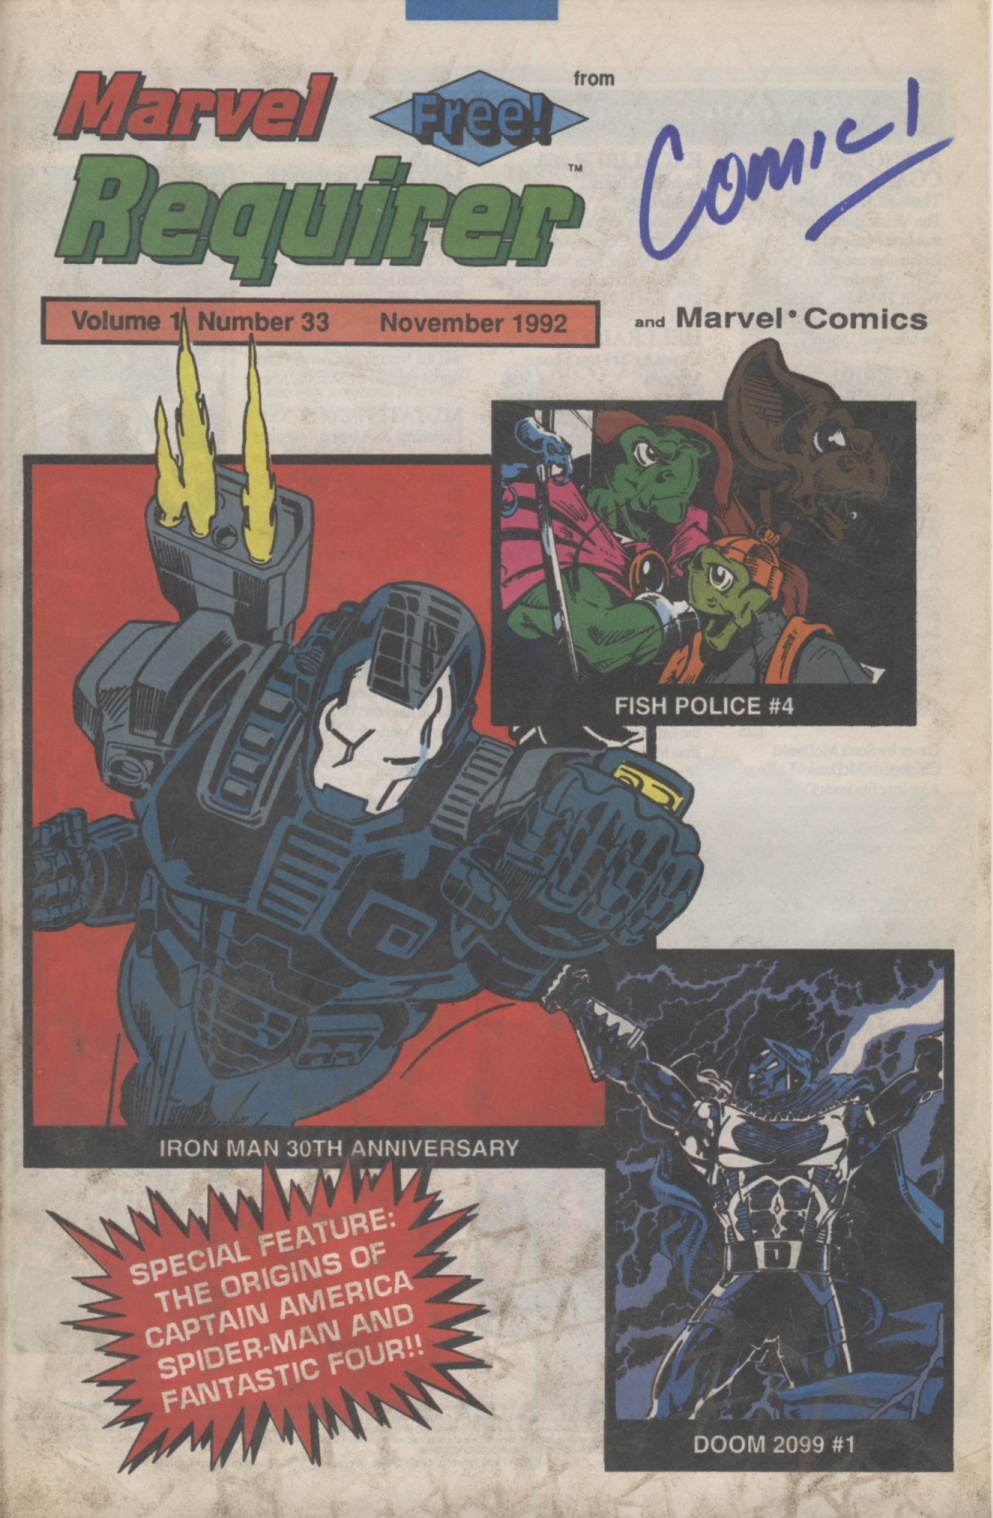 Time Capsule: Marvel Requirer November 1992